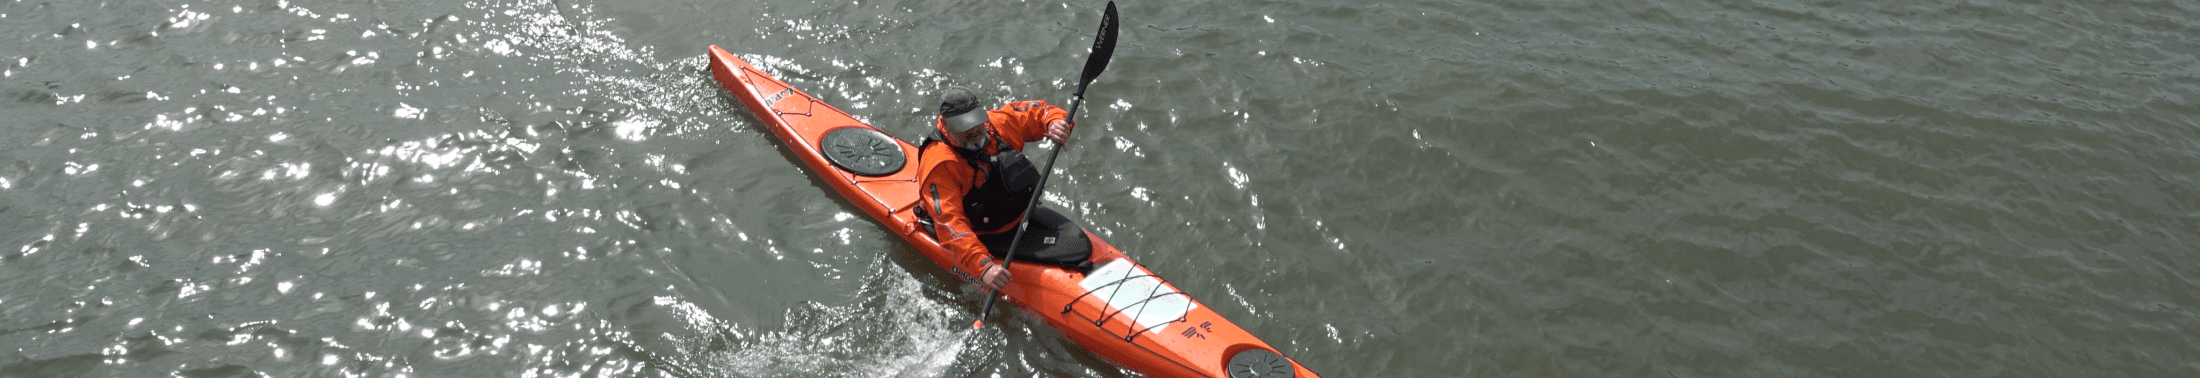 Man kayaks in open water